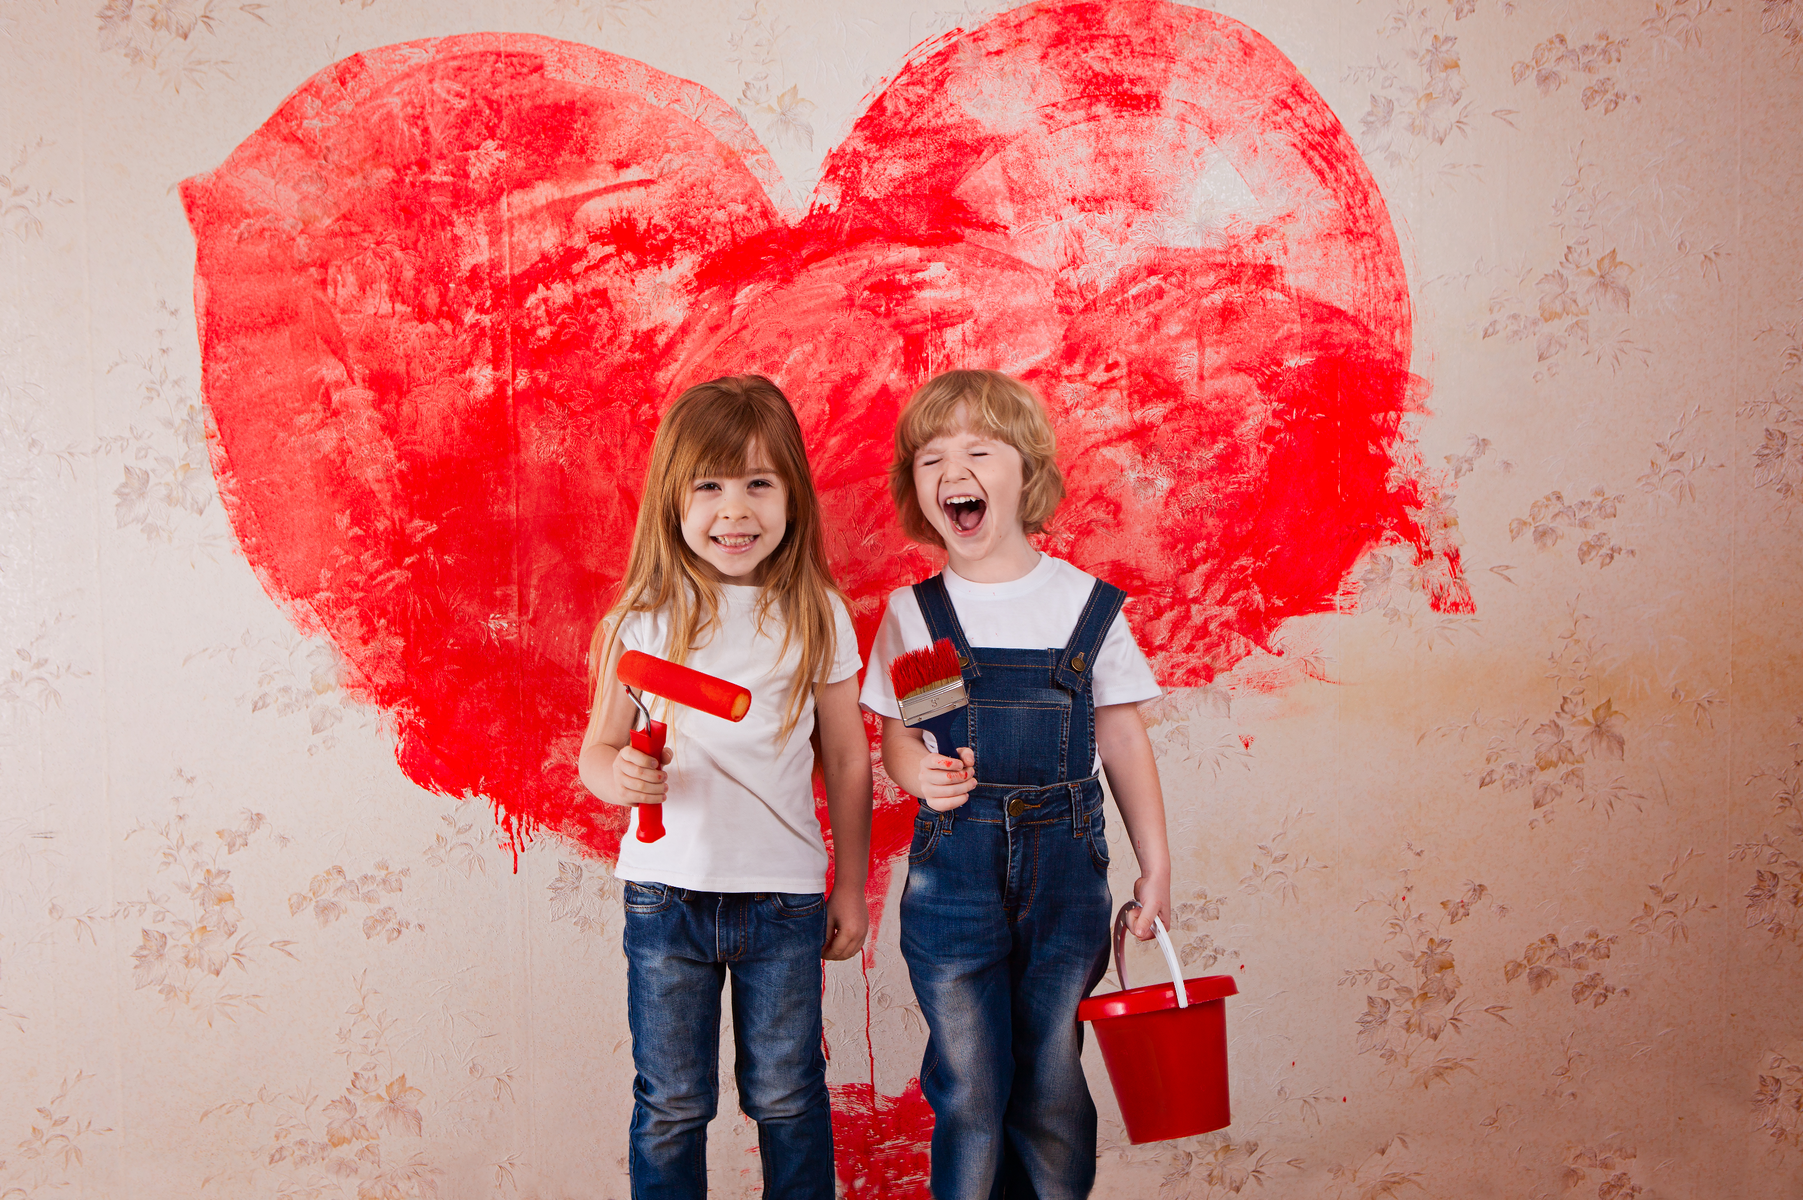 Teaching Your Kids About Love